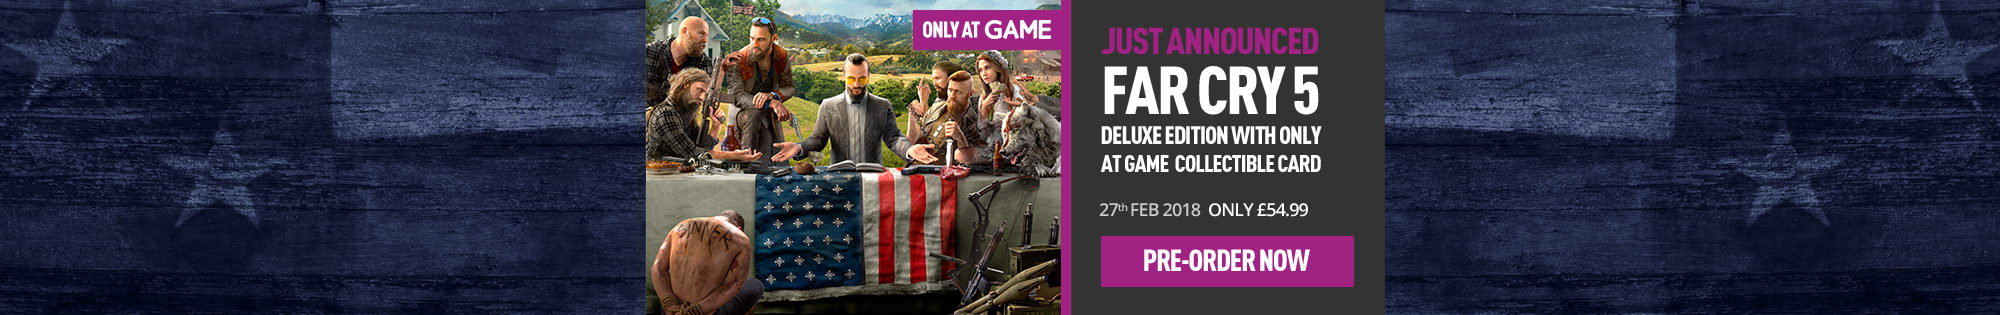 Far Cry 5 for PlayStation 4 and Xbox One - Homepage banner